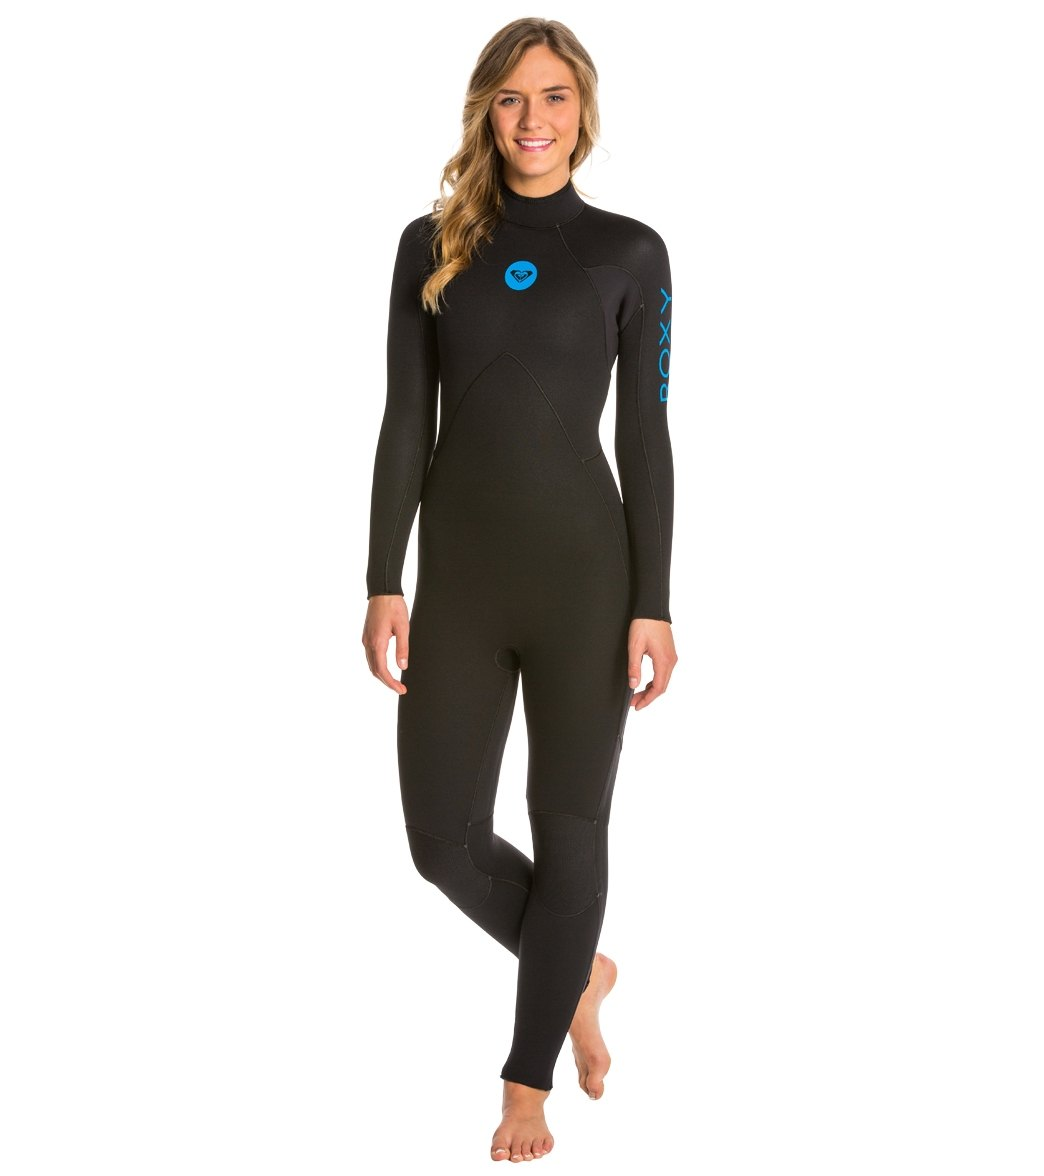 Roxy Women s 5 4 3mm Syncro Base Back Zip Full Suit Wetsuit at ... e6c5dbd75